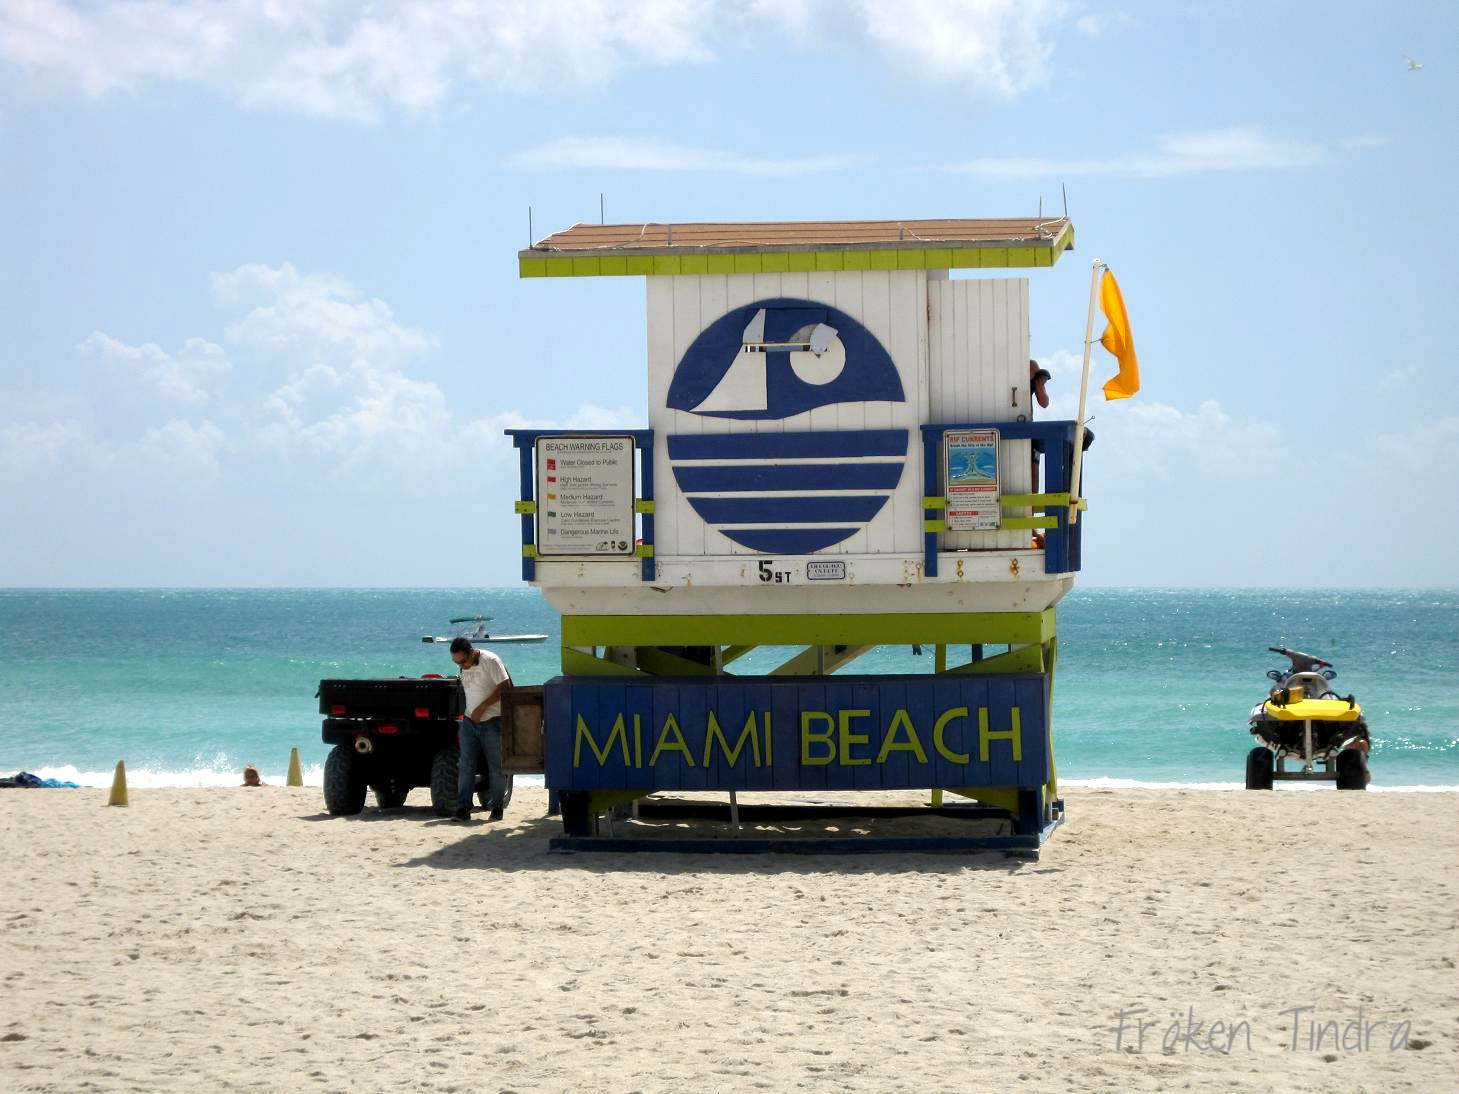 Miami Beach, USA, Maj -12